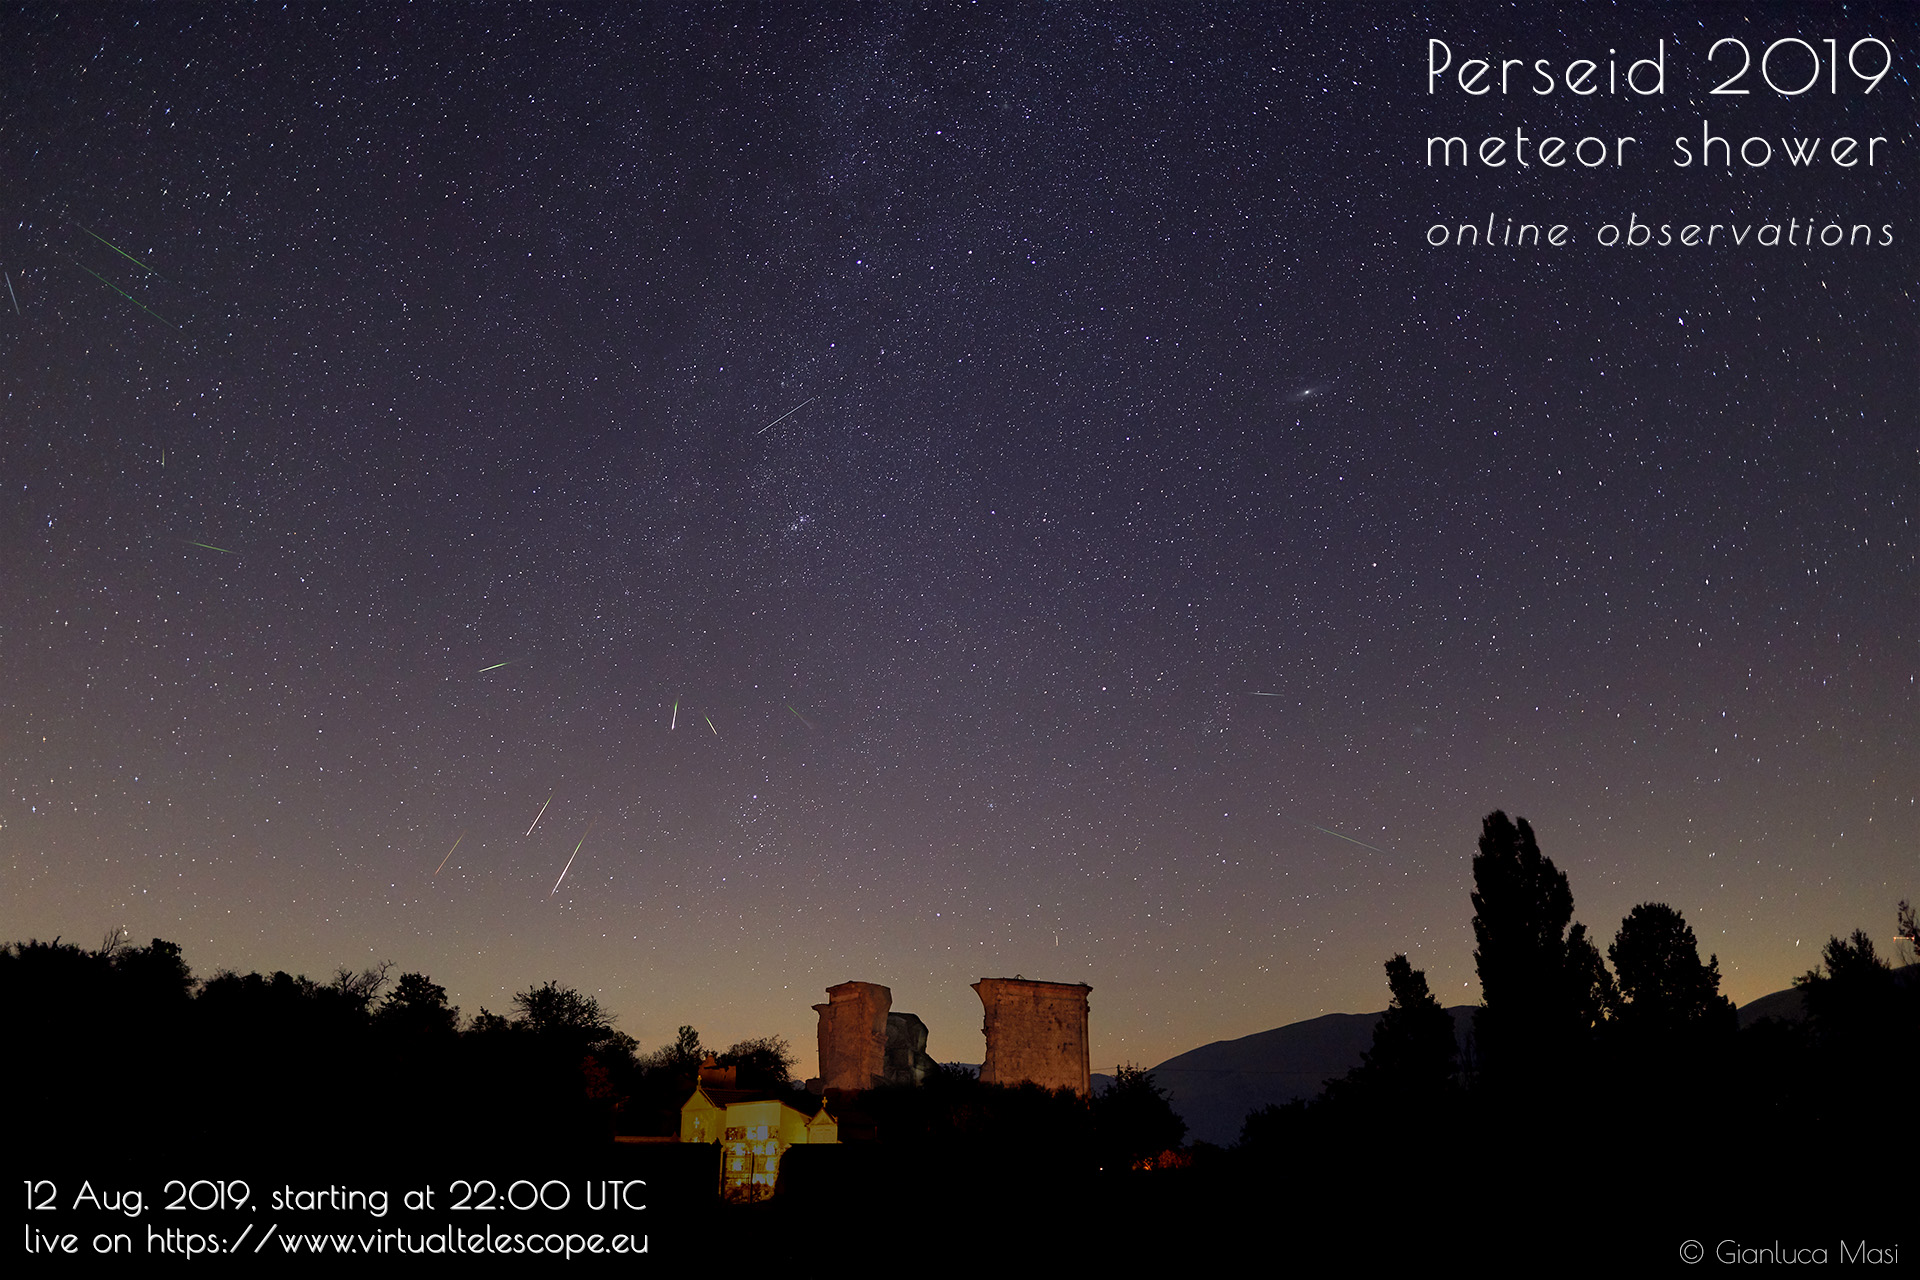 Perseids 2019: poster of the event